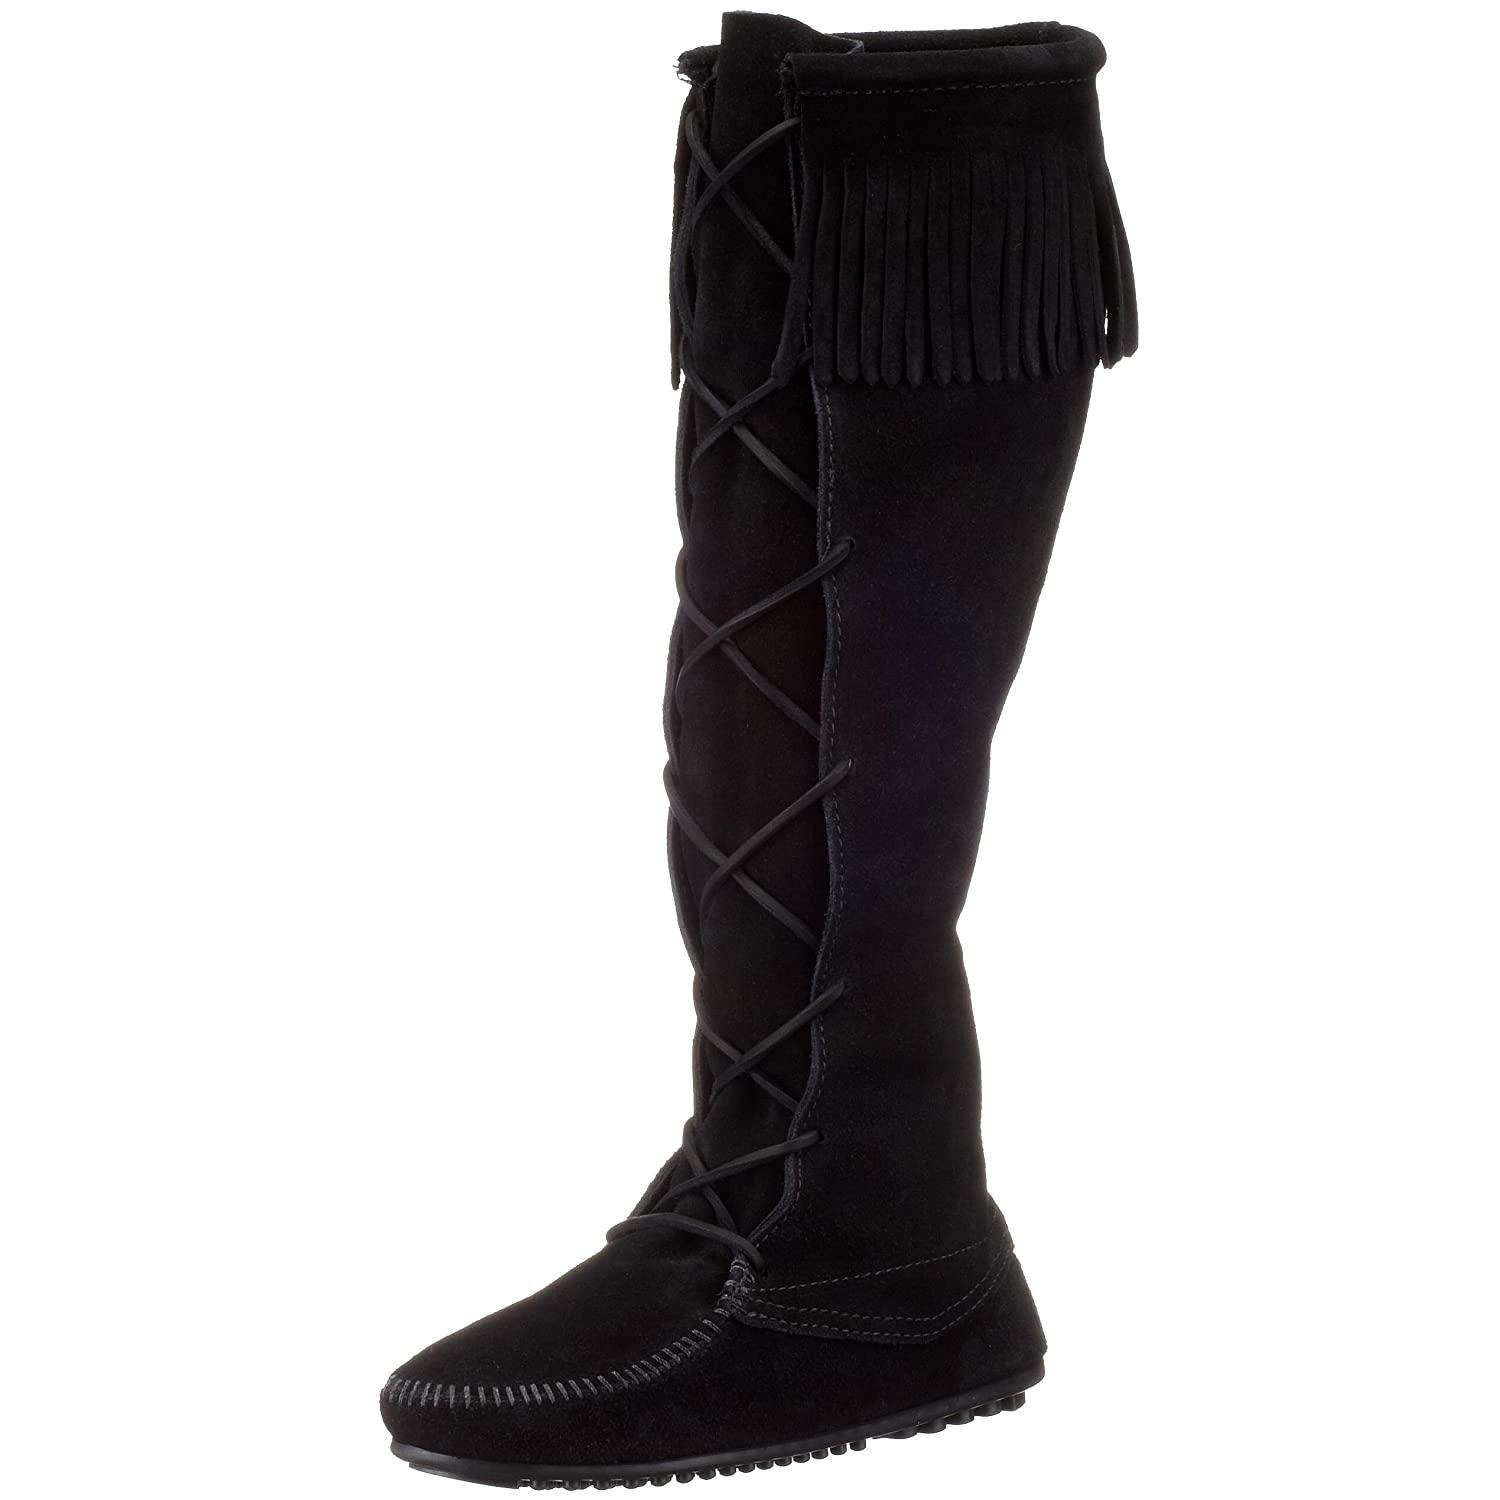 Minnetonka Women's 1429 Front Lace Knee-High Boot B0007STVUU 5 B(M) US|Black